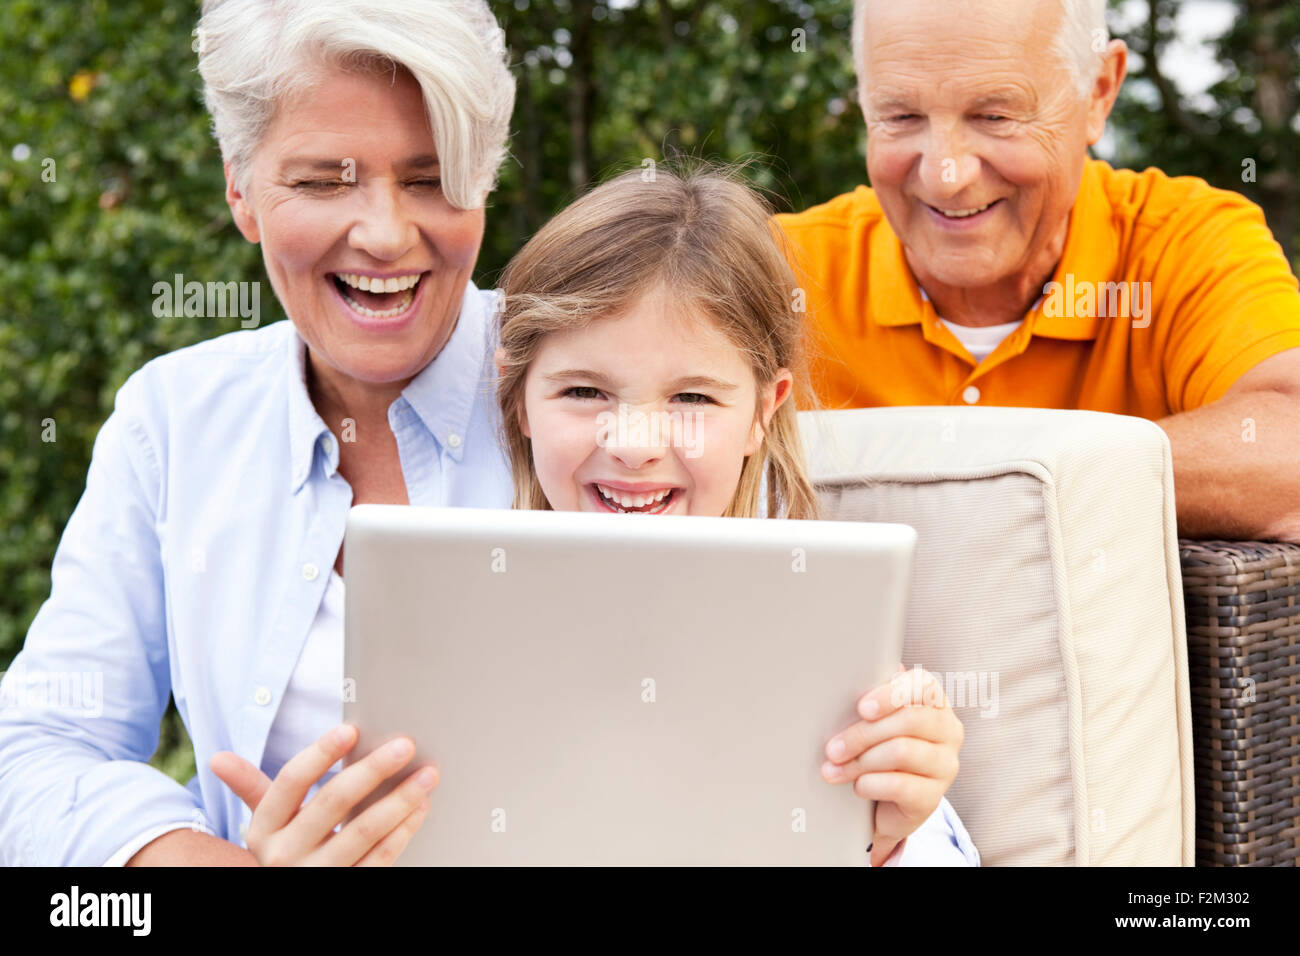 Happy grandparents and girl outdoors using digital tablet - Stock Image